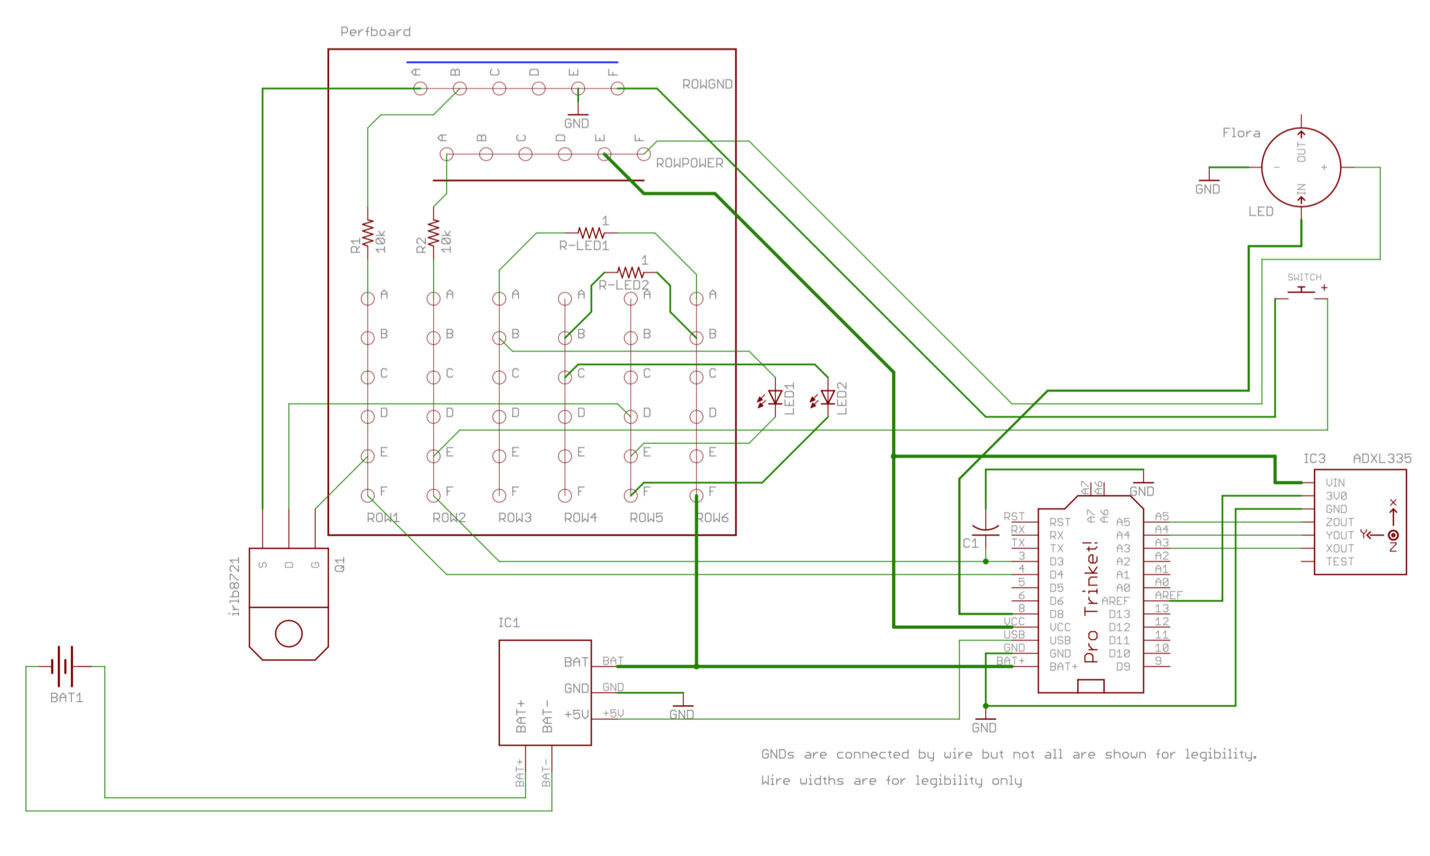 The wiring schematic of the Netflix sock.